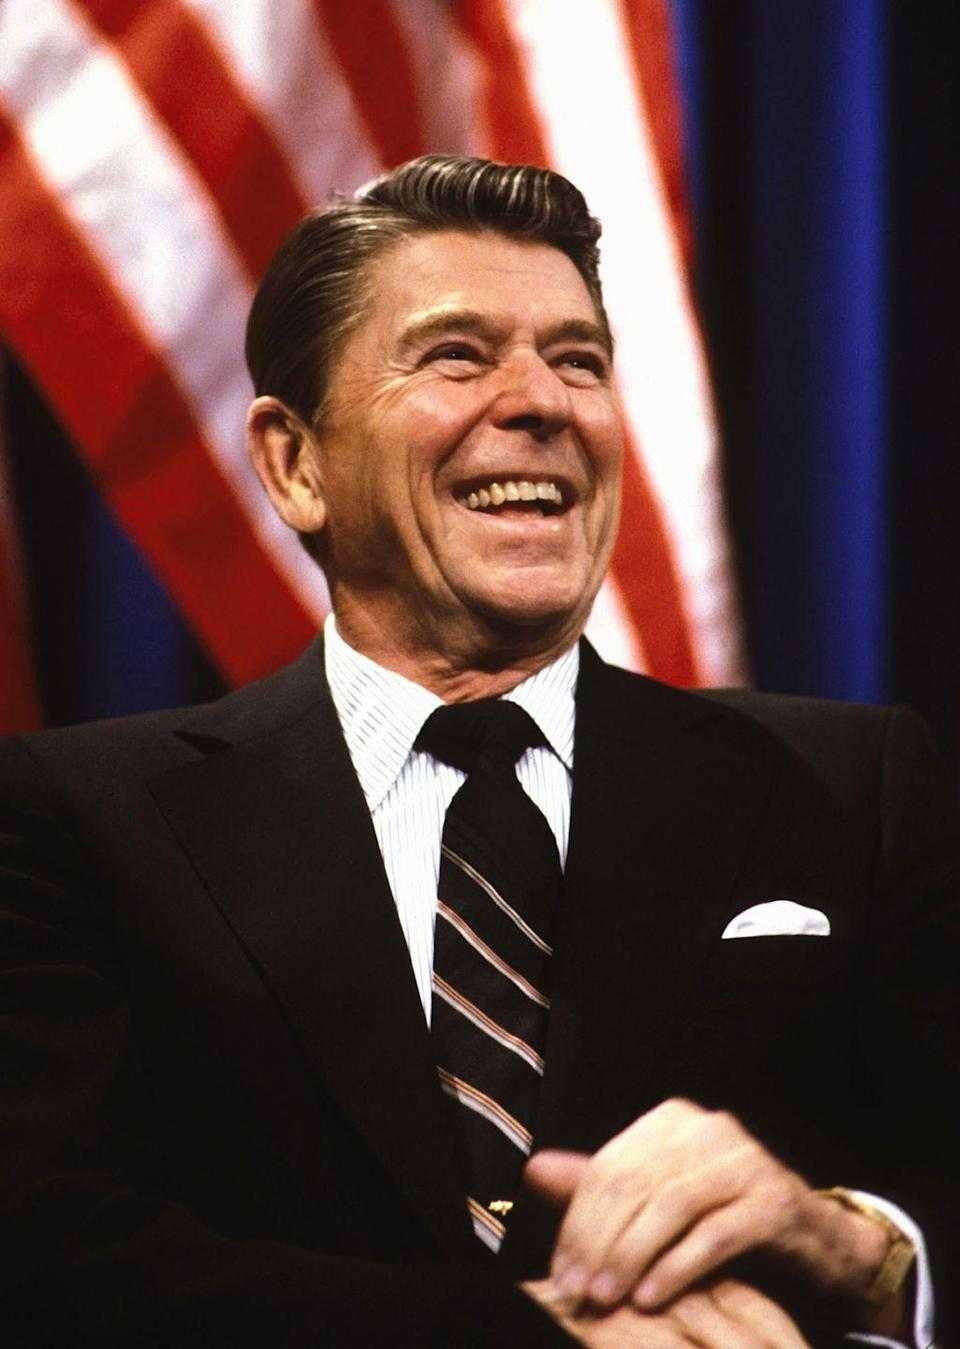 """<p>In March of 1983, President Ronald Reagan announced his missile defense system, nicknamed """"Star Wars"""" by Democratic Senator Ted Kennedy. Many critics expressed concern over the program's potential to reignite a dangerous arms race.</p>"""